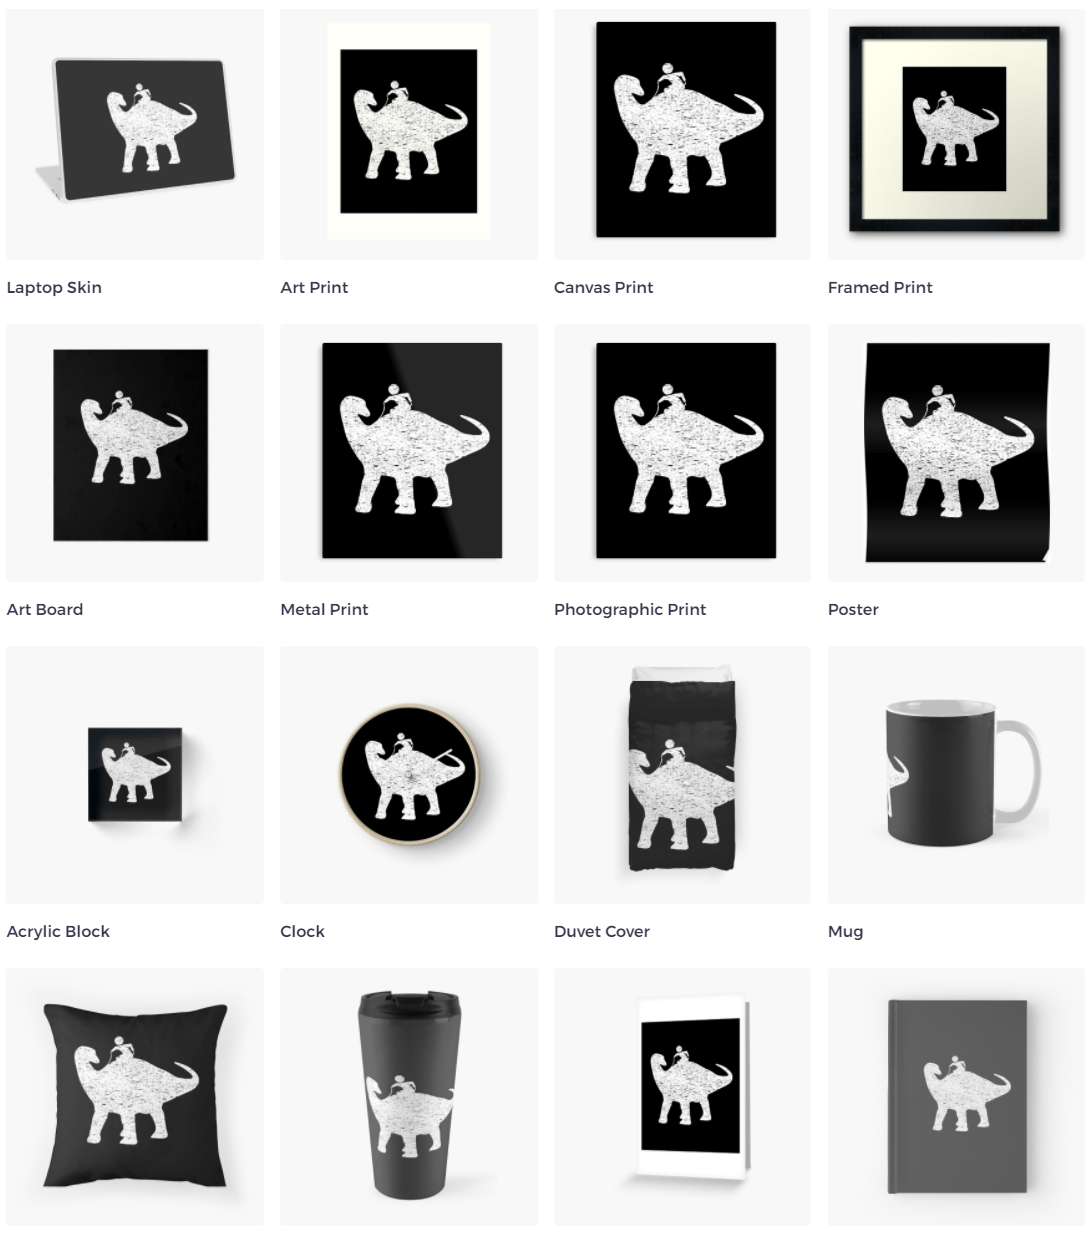 Many more options with custom colors available at Redbubble!